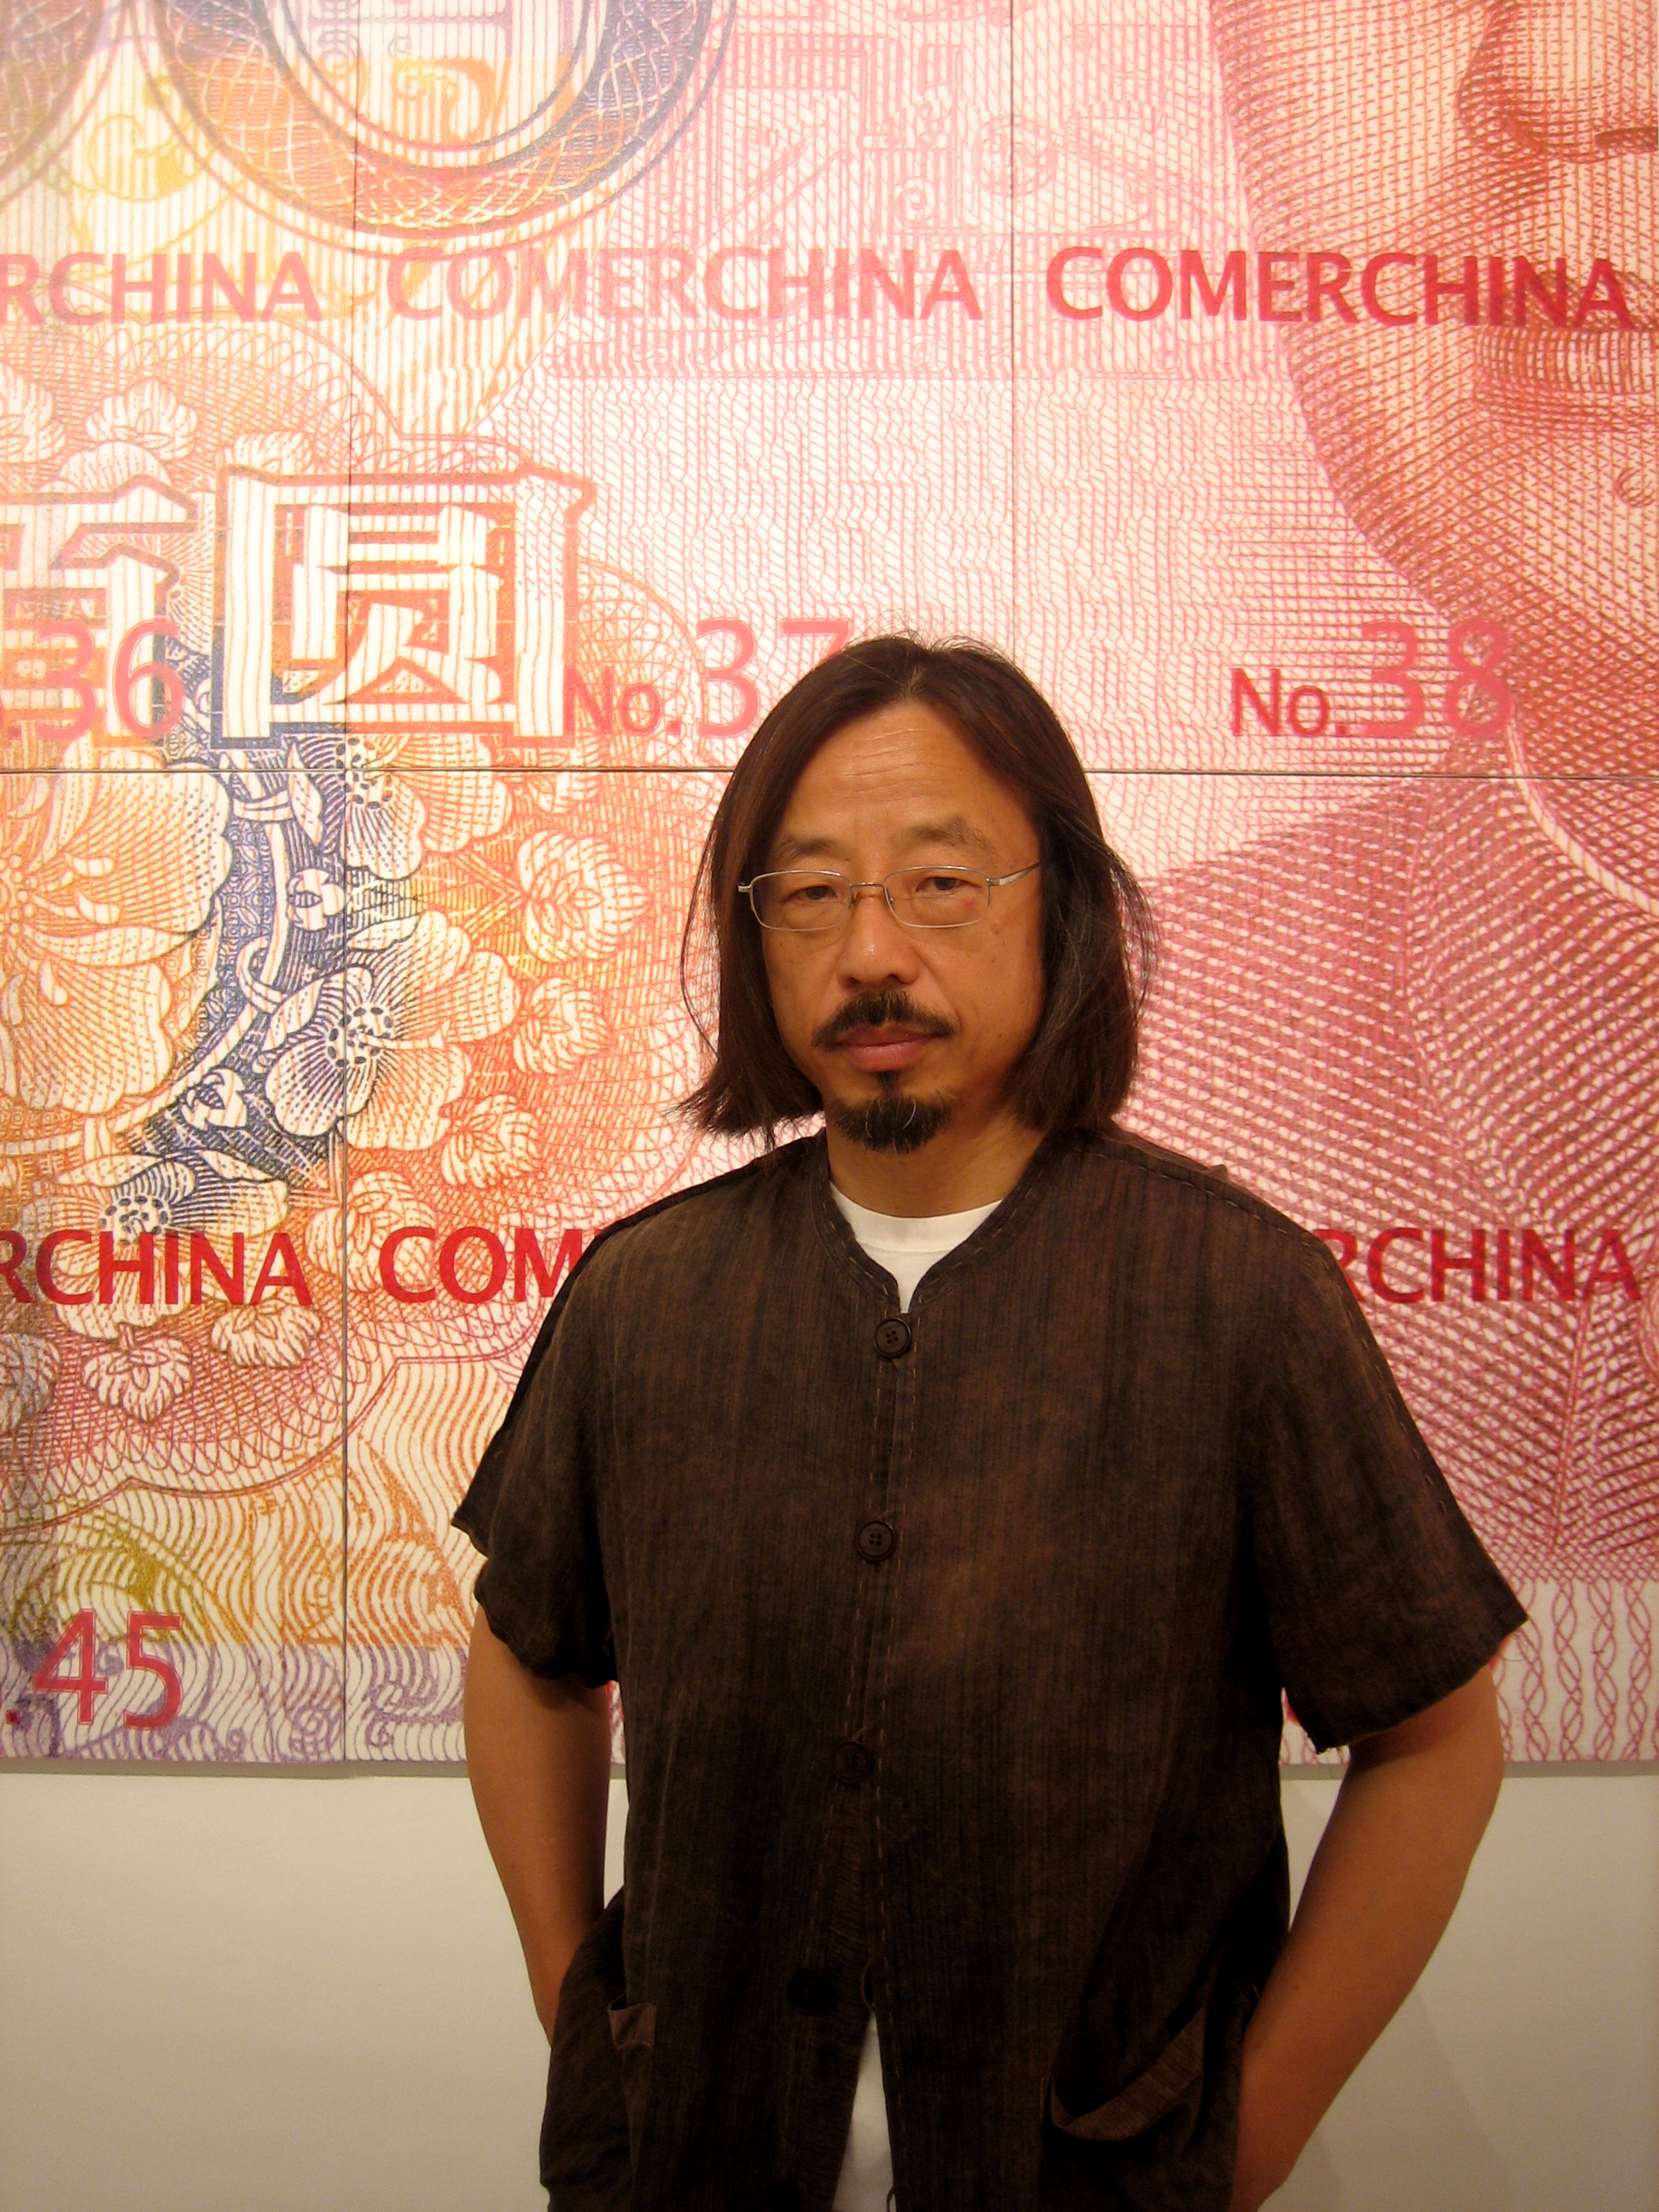 Artist Huang Rui standing in front of the Comerchina exhibition.